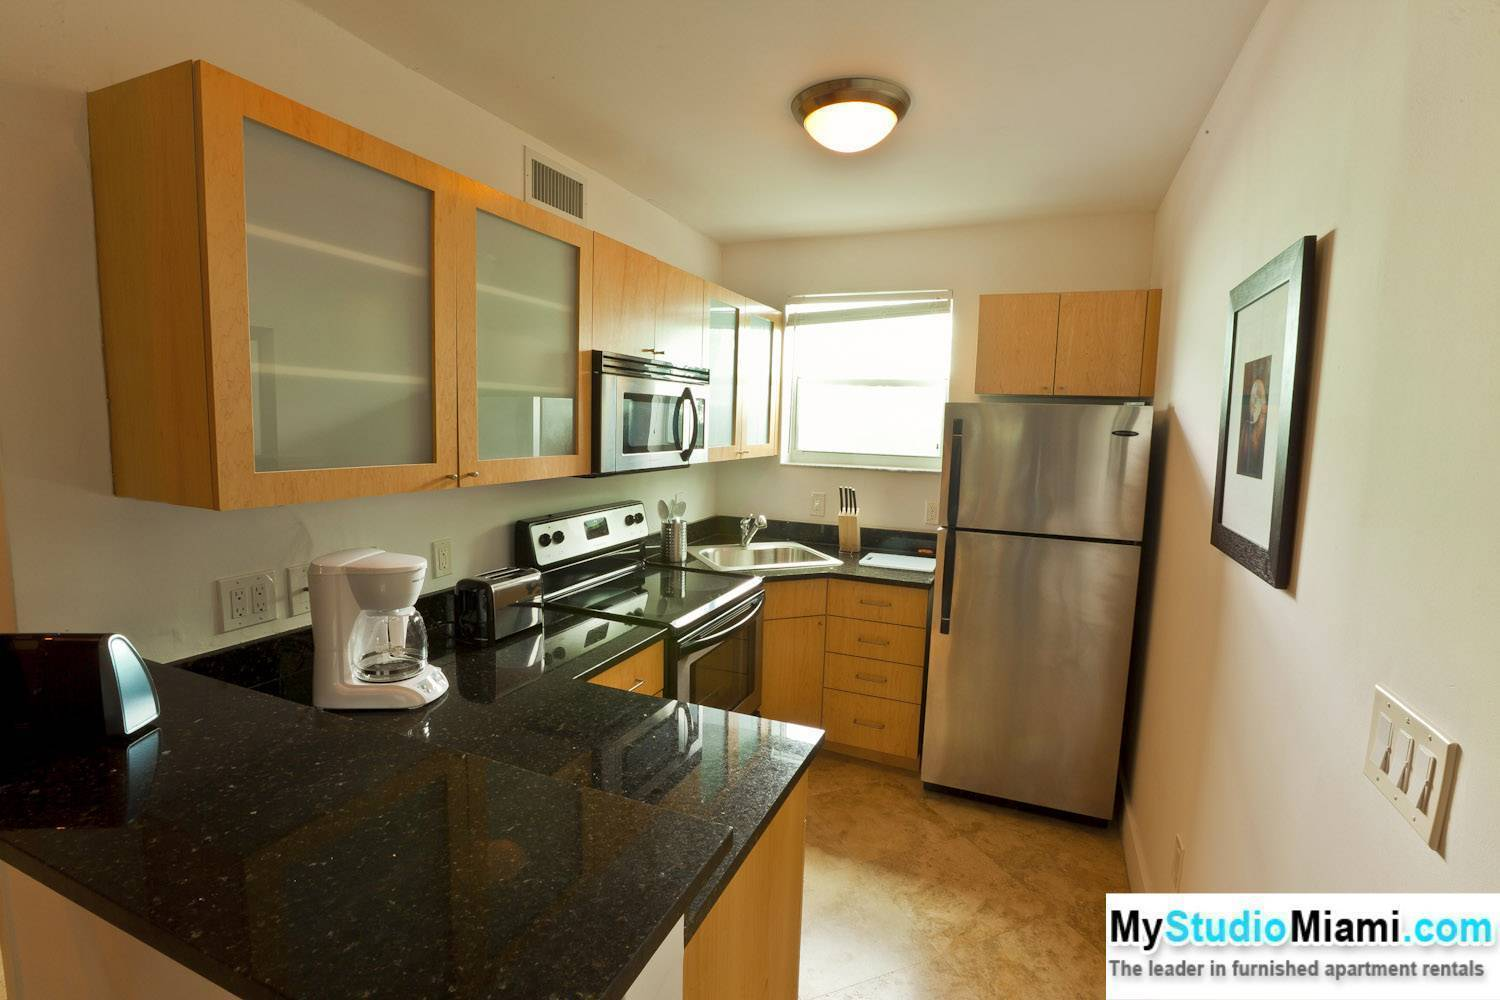 Apartment for rent miami florida united states for Studio apartments for rent